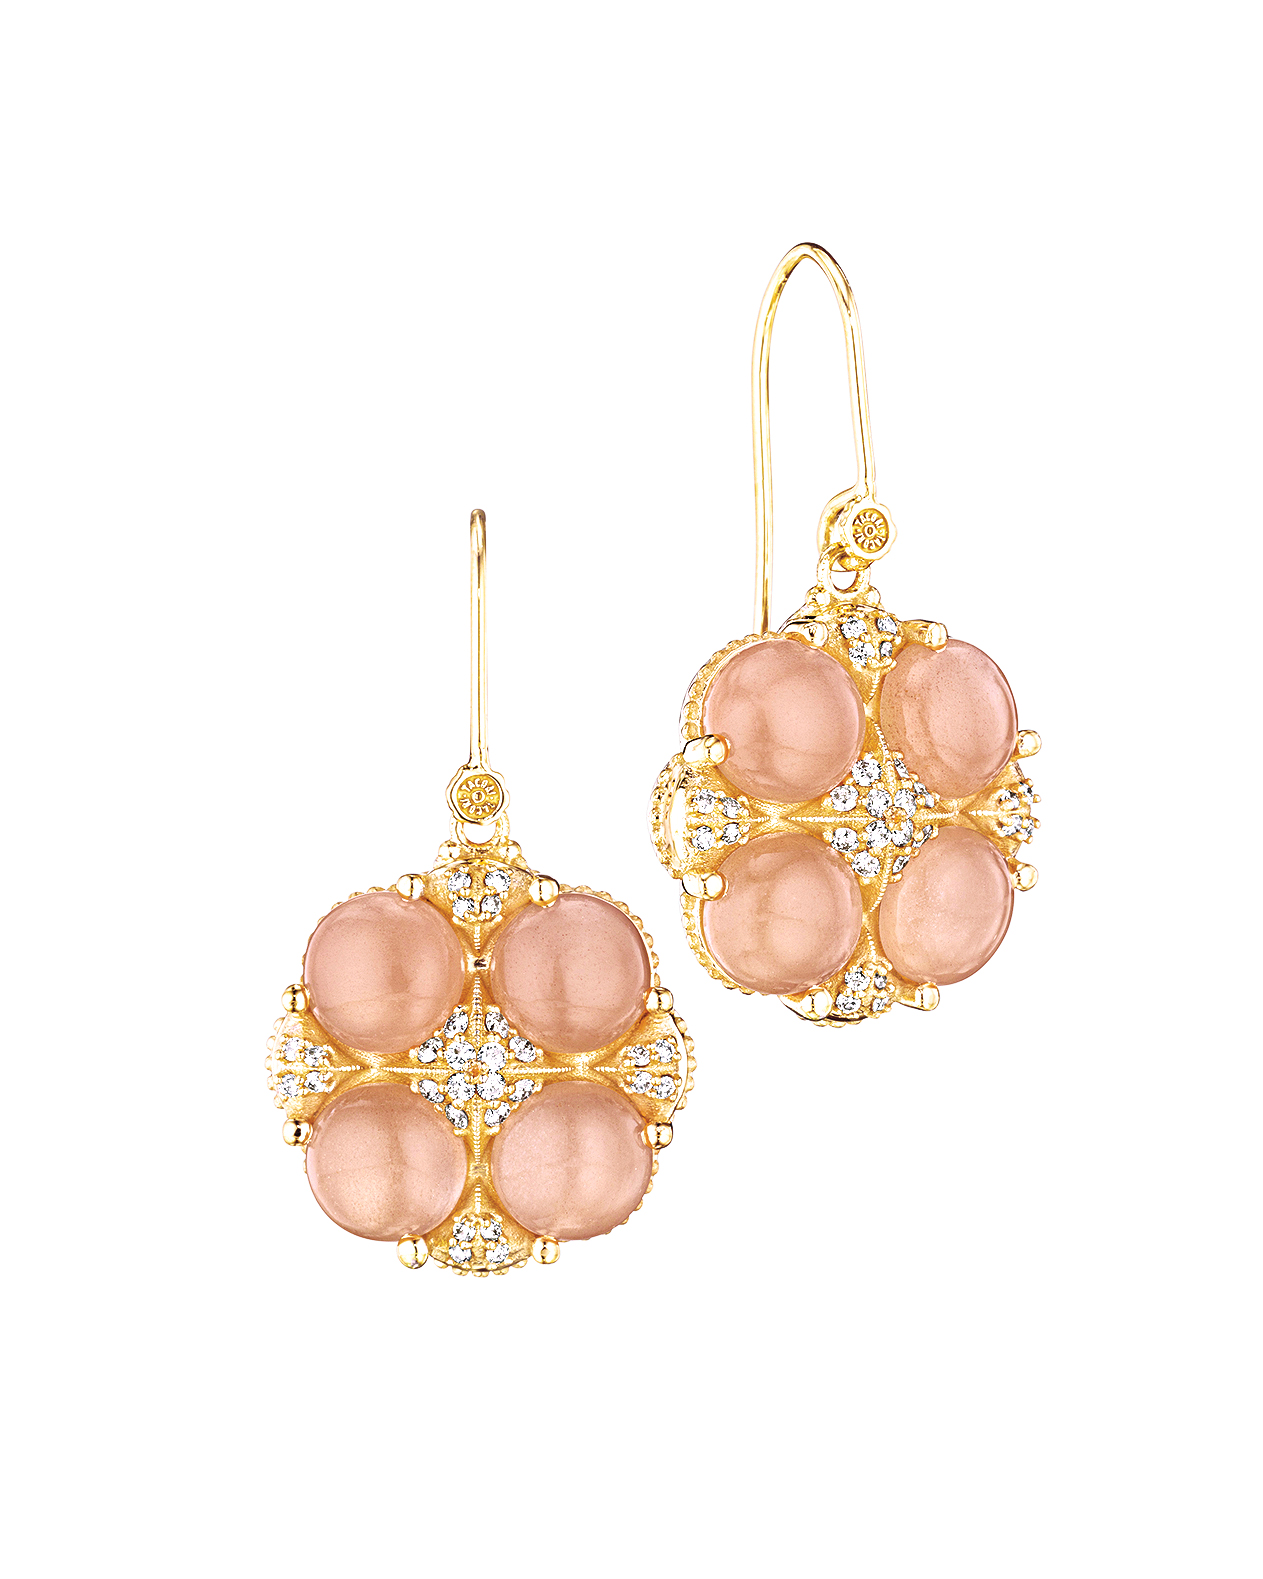 earrings-tacori-se194p36-10-mwds111006.jpg